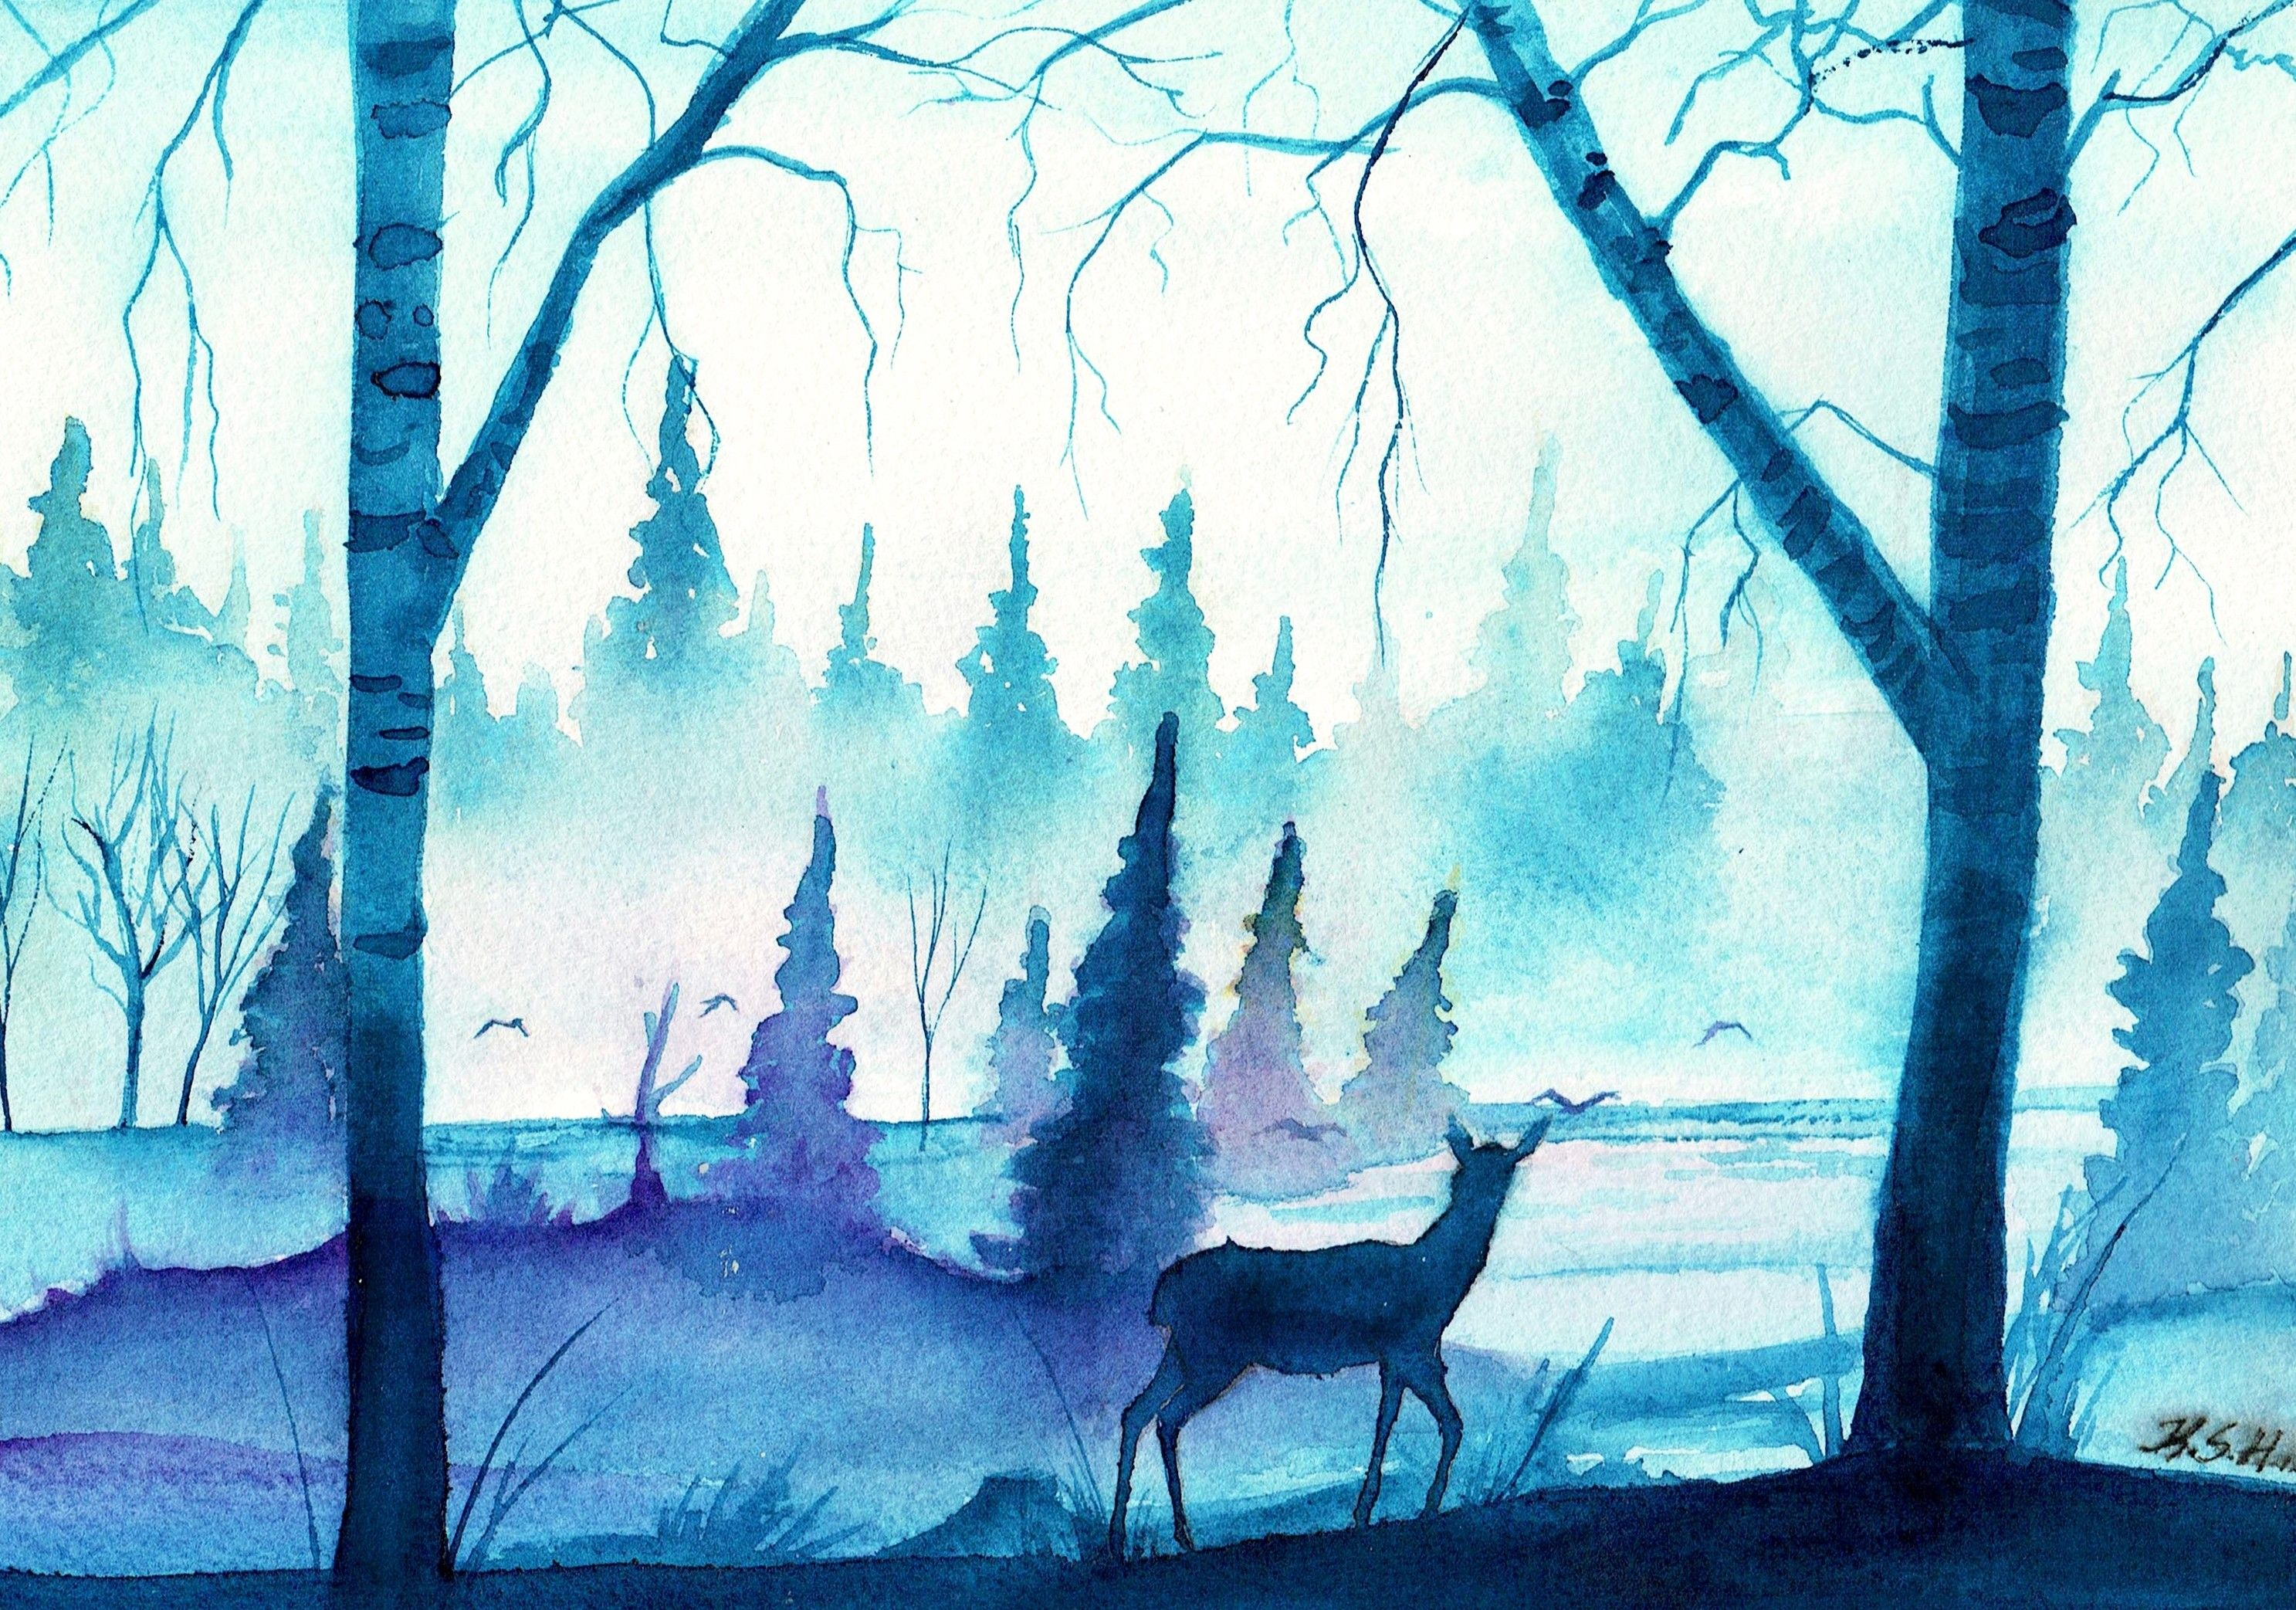 general 2974x2085 watercolor deer blue forest mist watercolor art diy watercolor deer painting watercolor deer blue forest mist